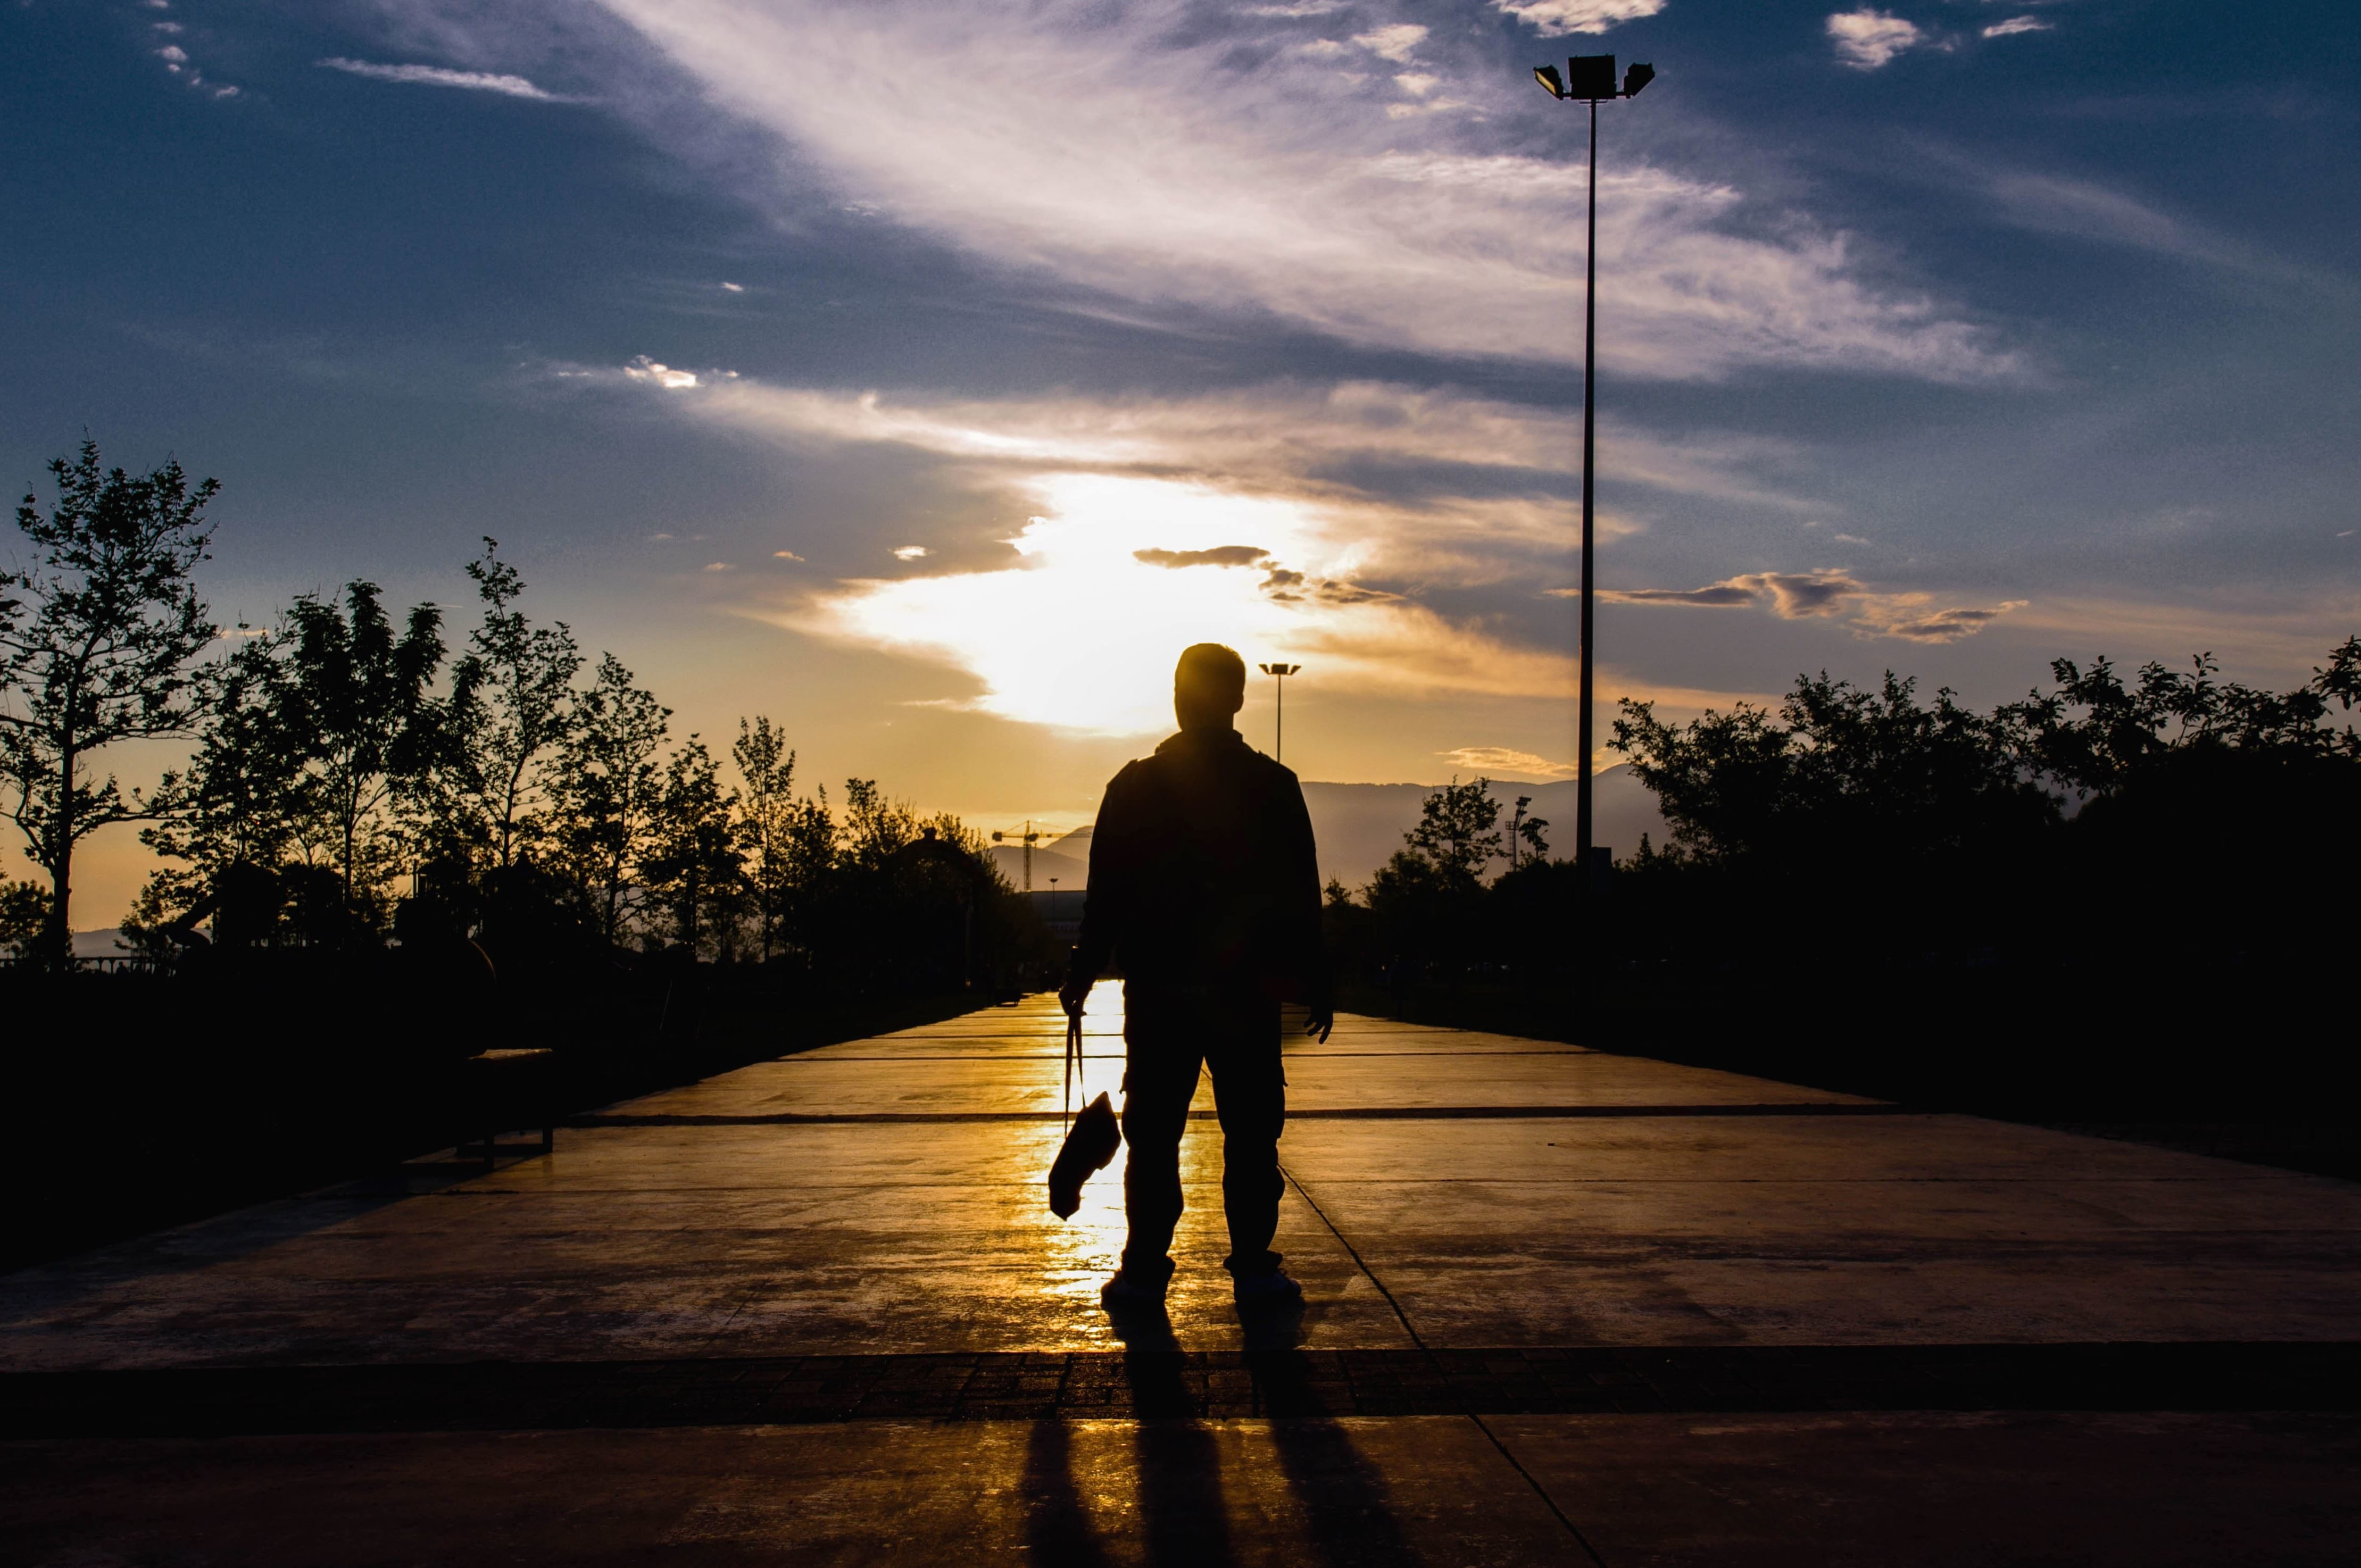 Free picture: sun, sky, silhouette, sunset, shadow, man